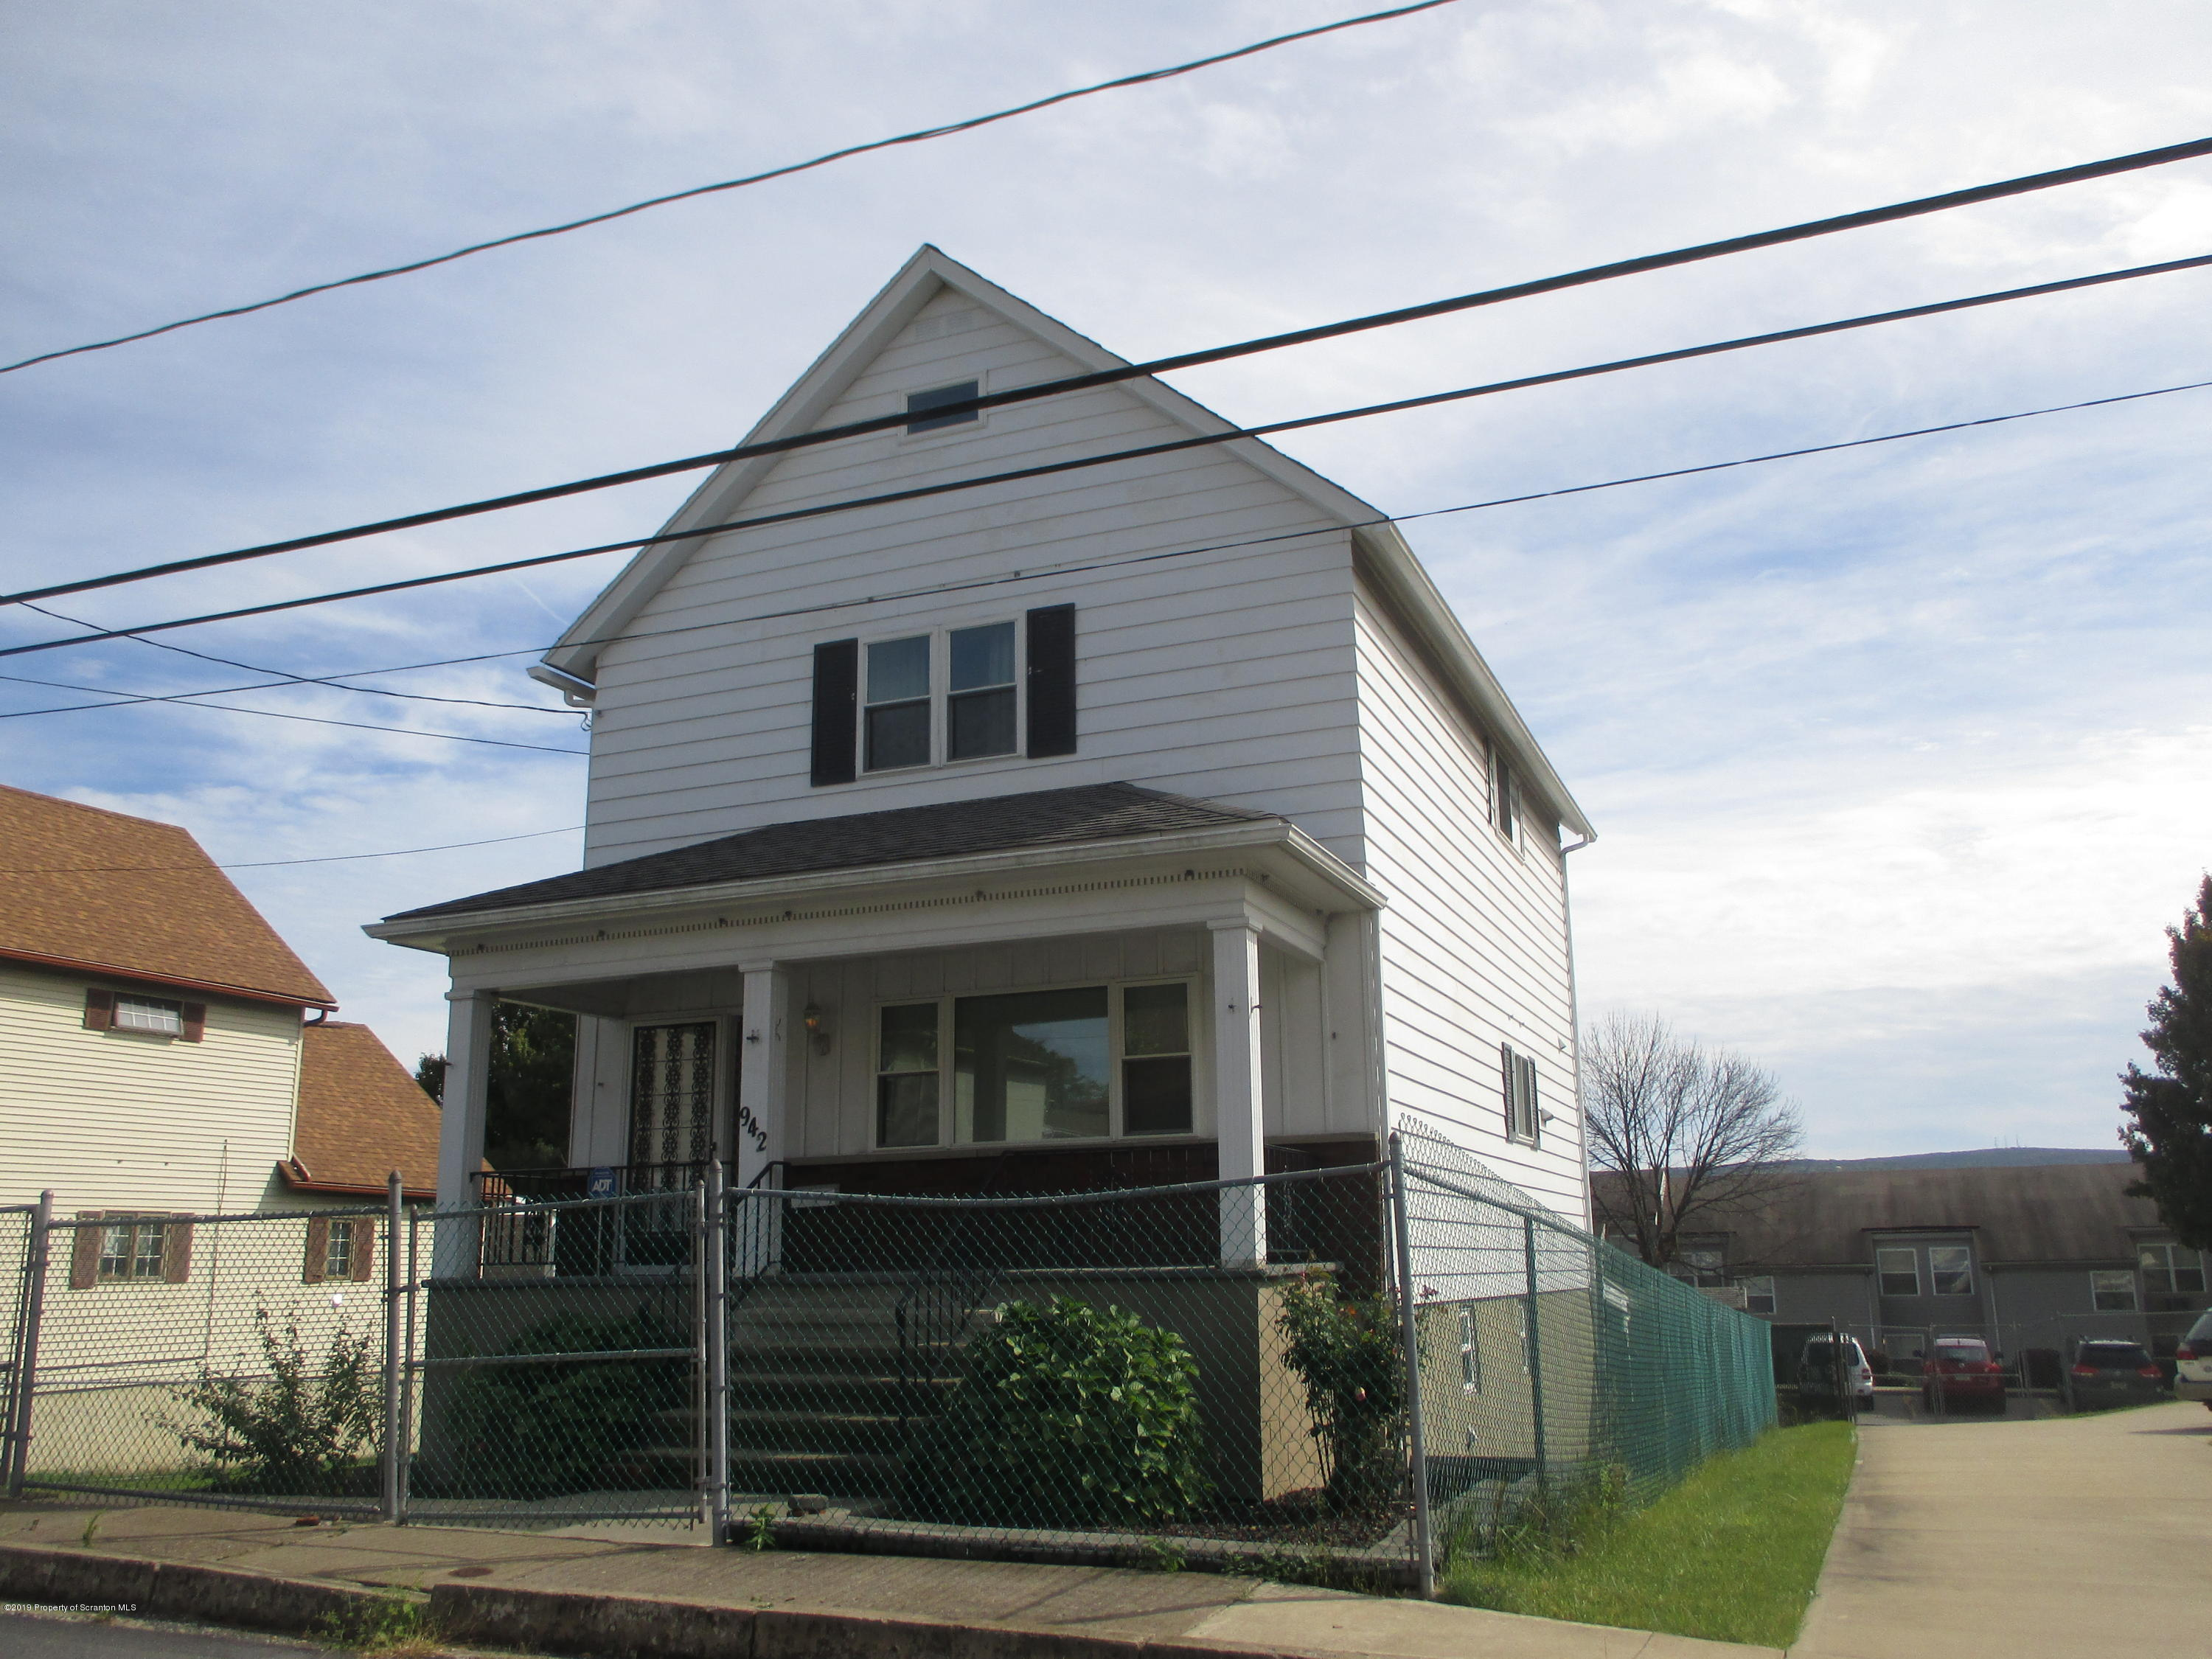 942 Mt Vernon Ave, Scranton, Pennsylvania 18508, 3 Bedrooms Bedrooms, 9 Rooms Rooms,3 BathroomsBathrooms,Single Family,For Sale,Mt Vernon,19-4872